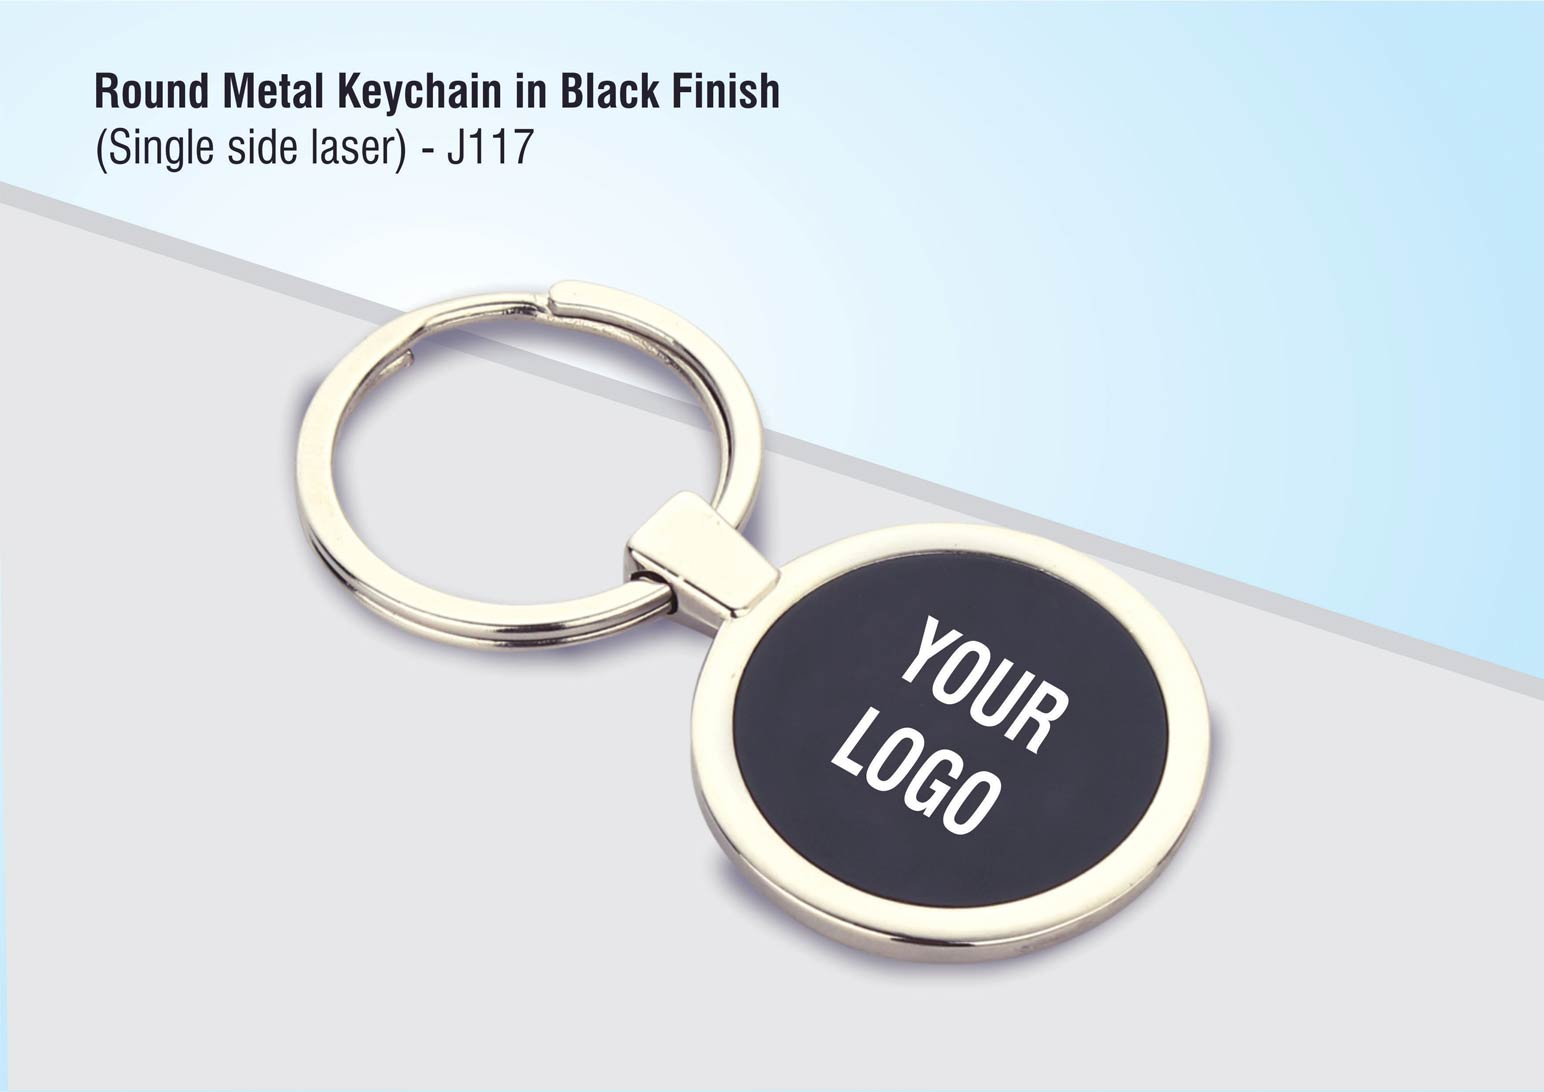 J117 - Round metal keychain in Black finish (single side laser)